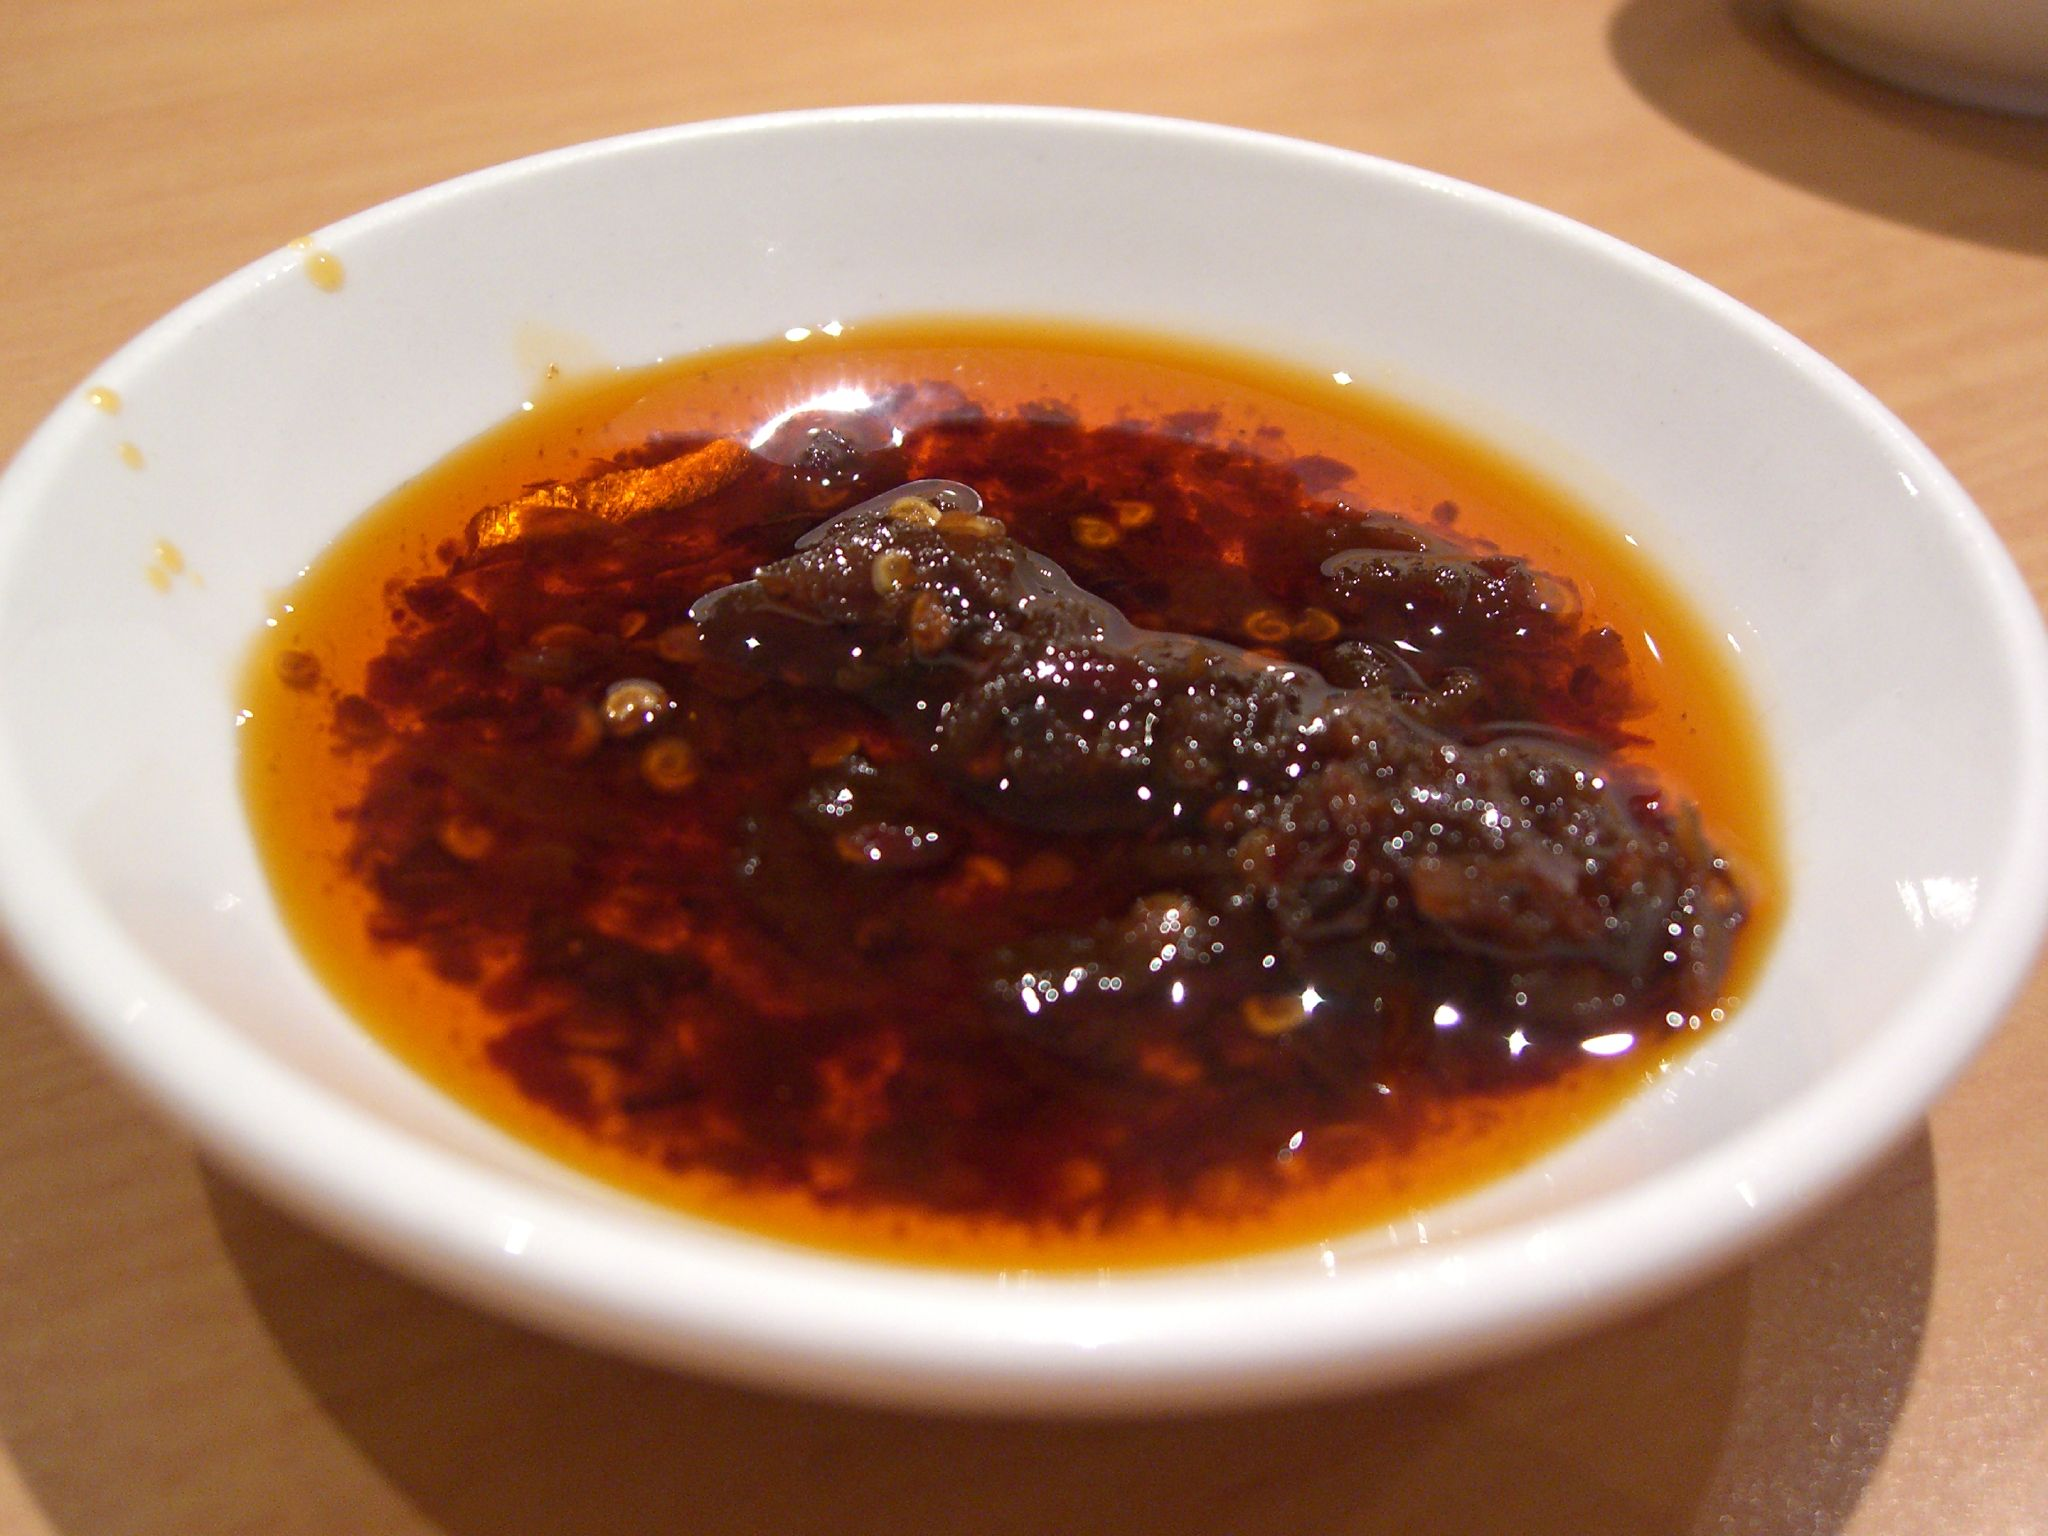 Brown bean sauce is a thick, salty brown sauce made from whole or ...